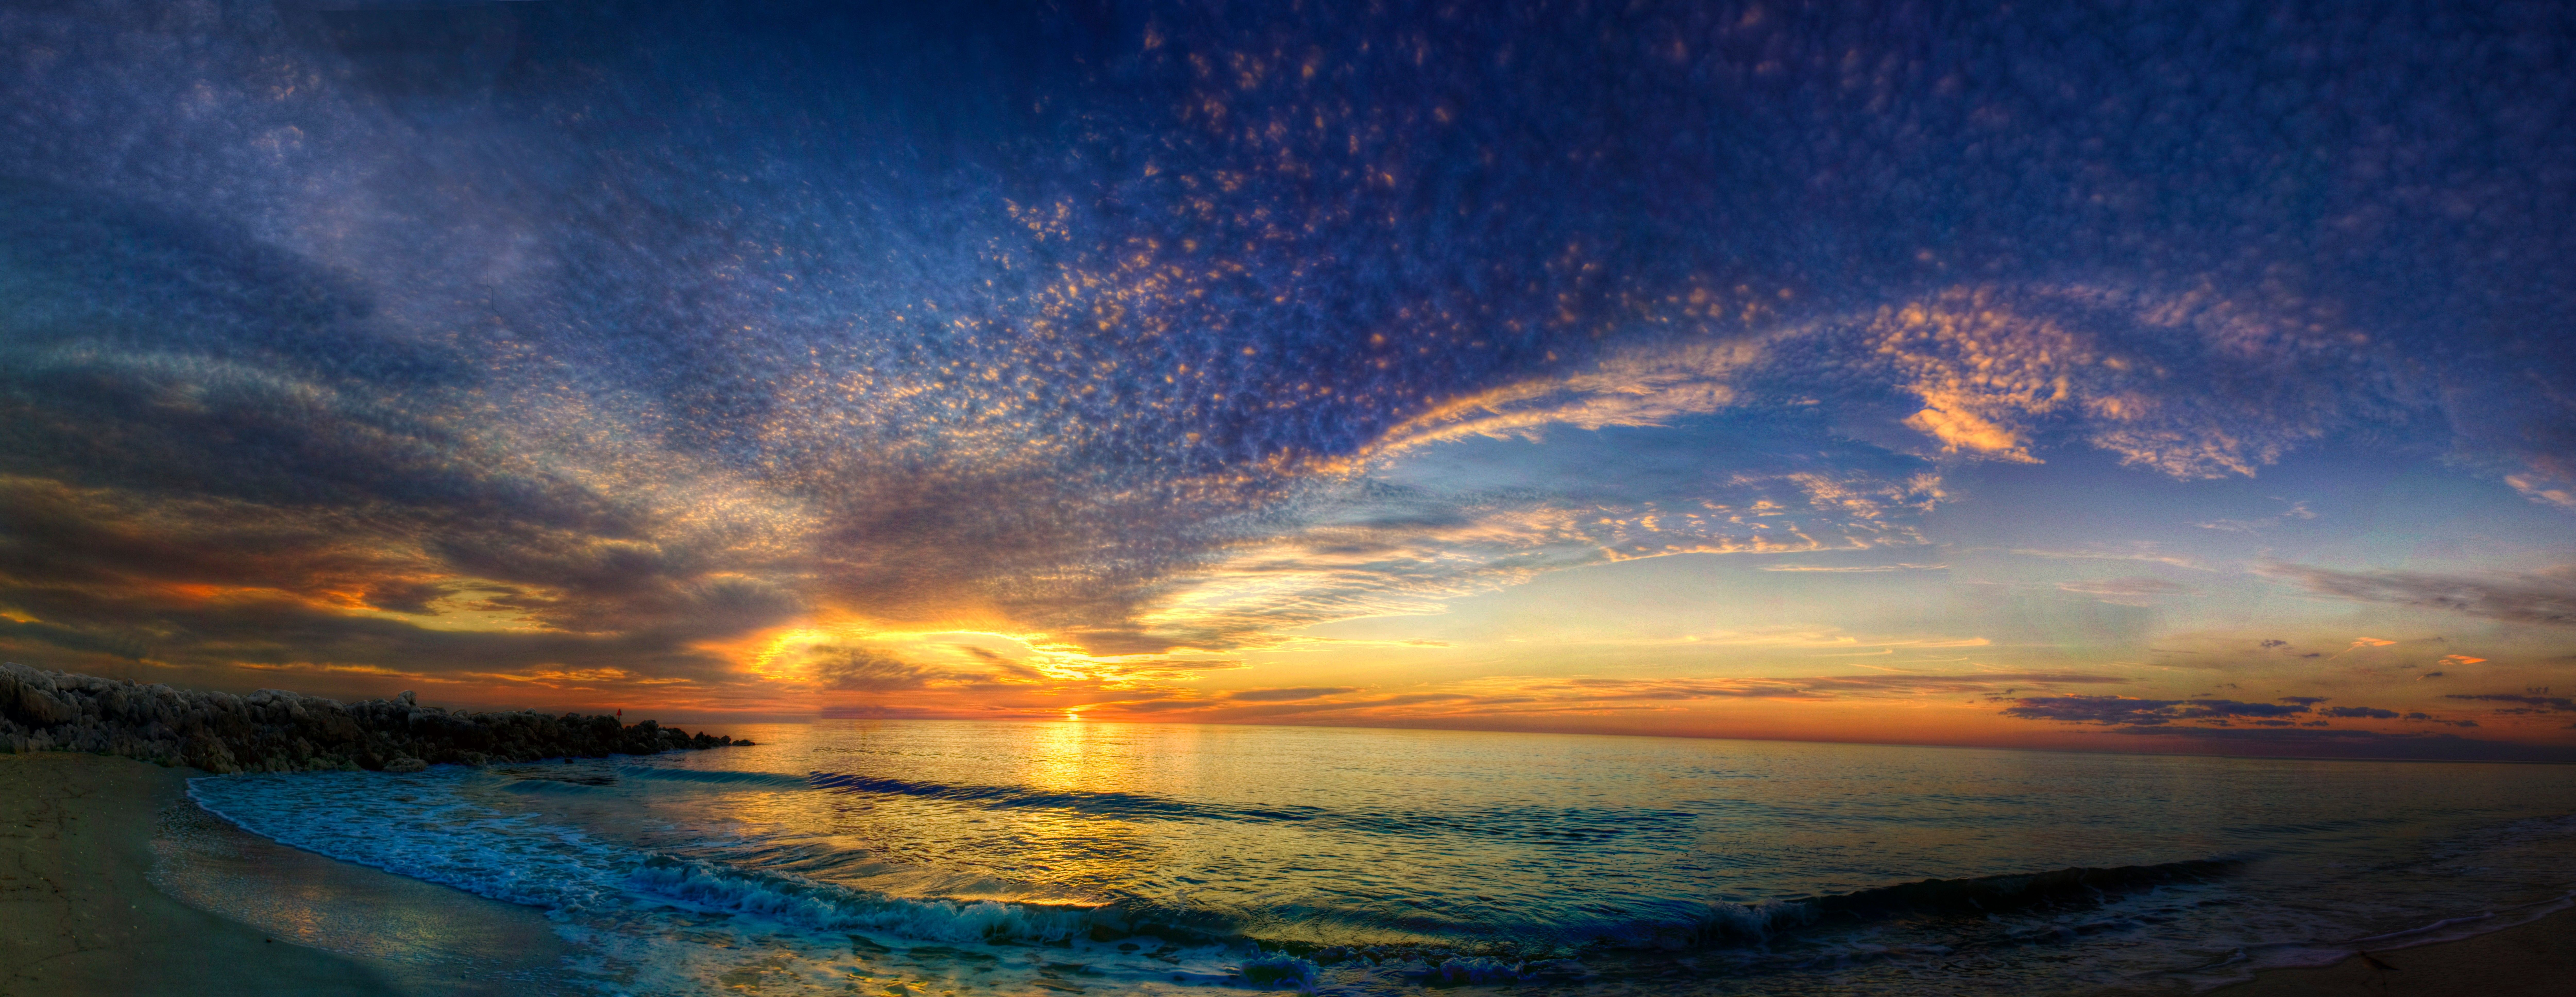 A panorama of the sun setting over the ocean.